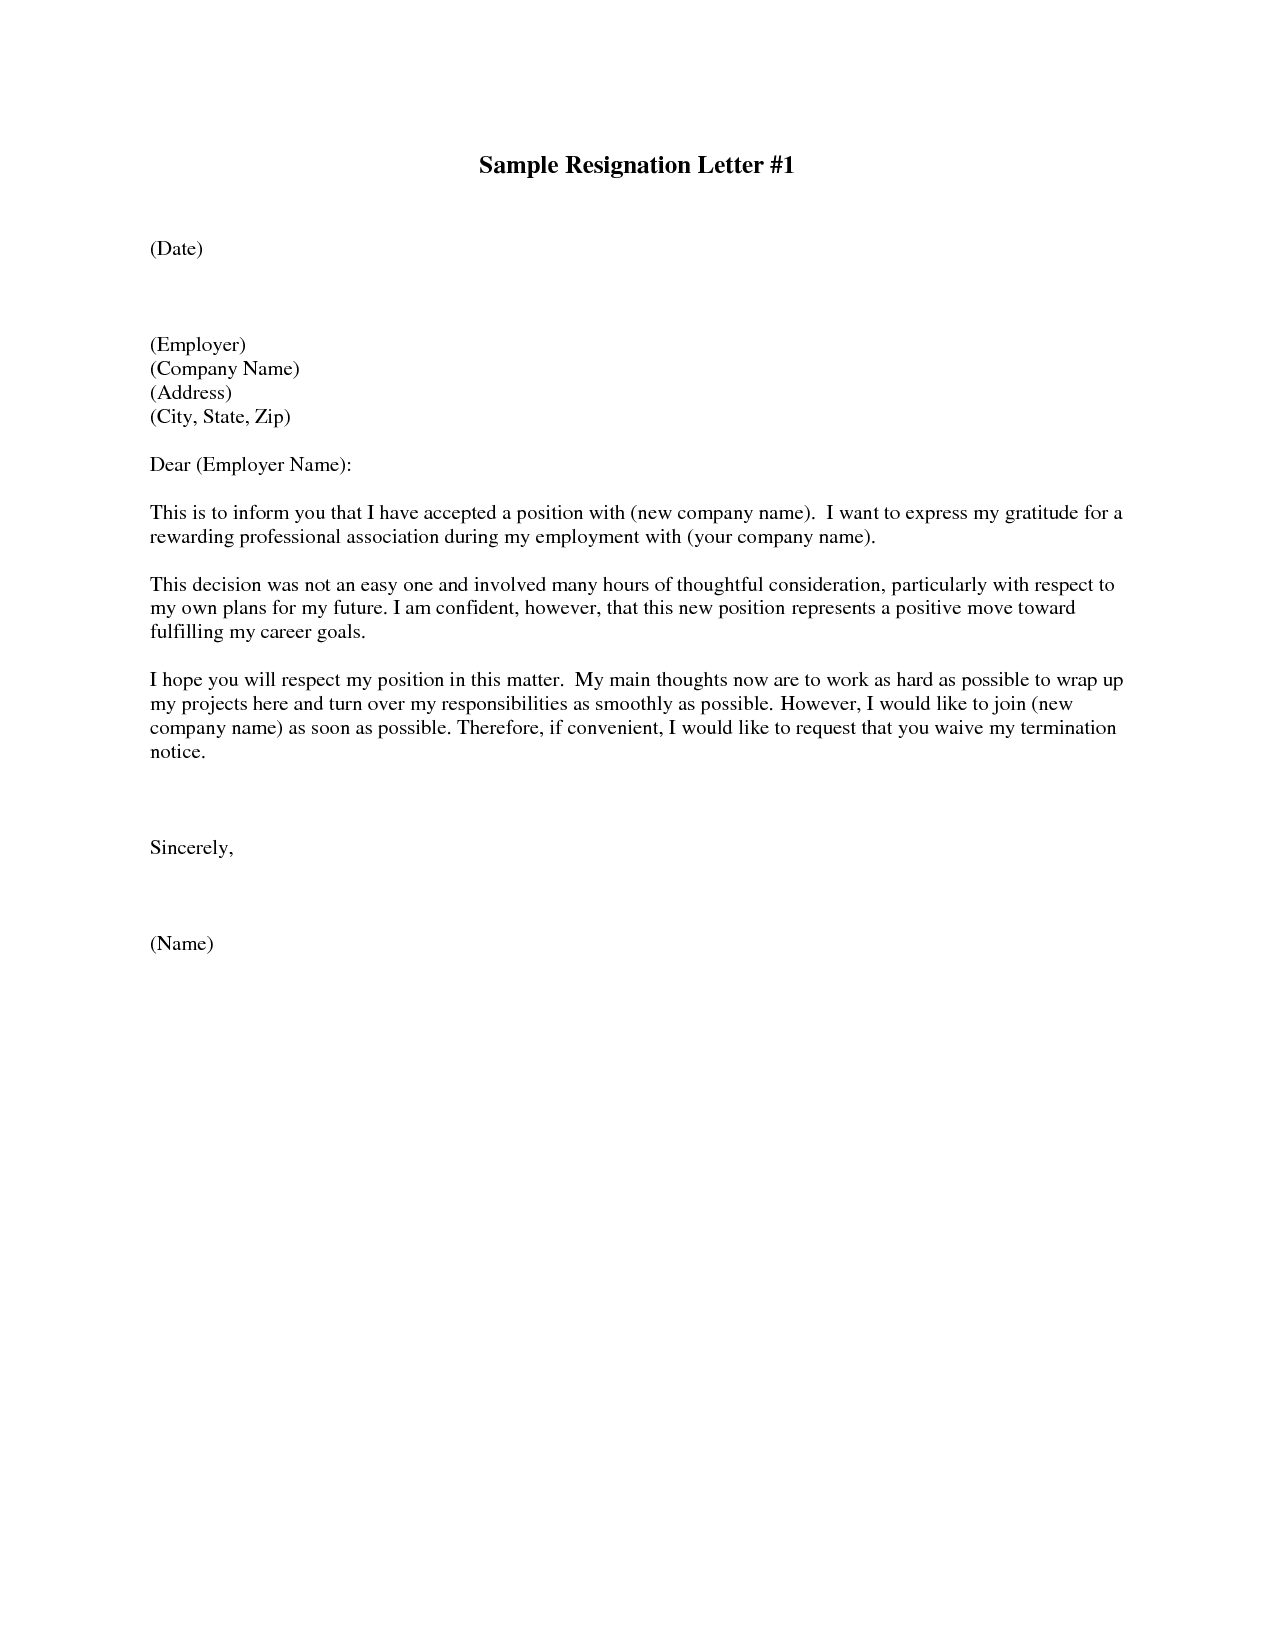 Letter of Resignation Letter Short example